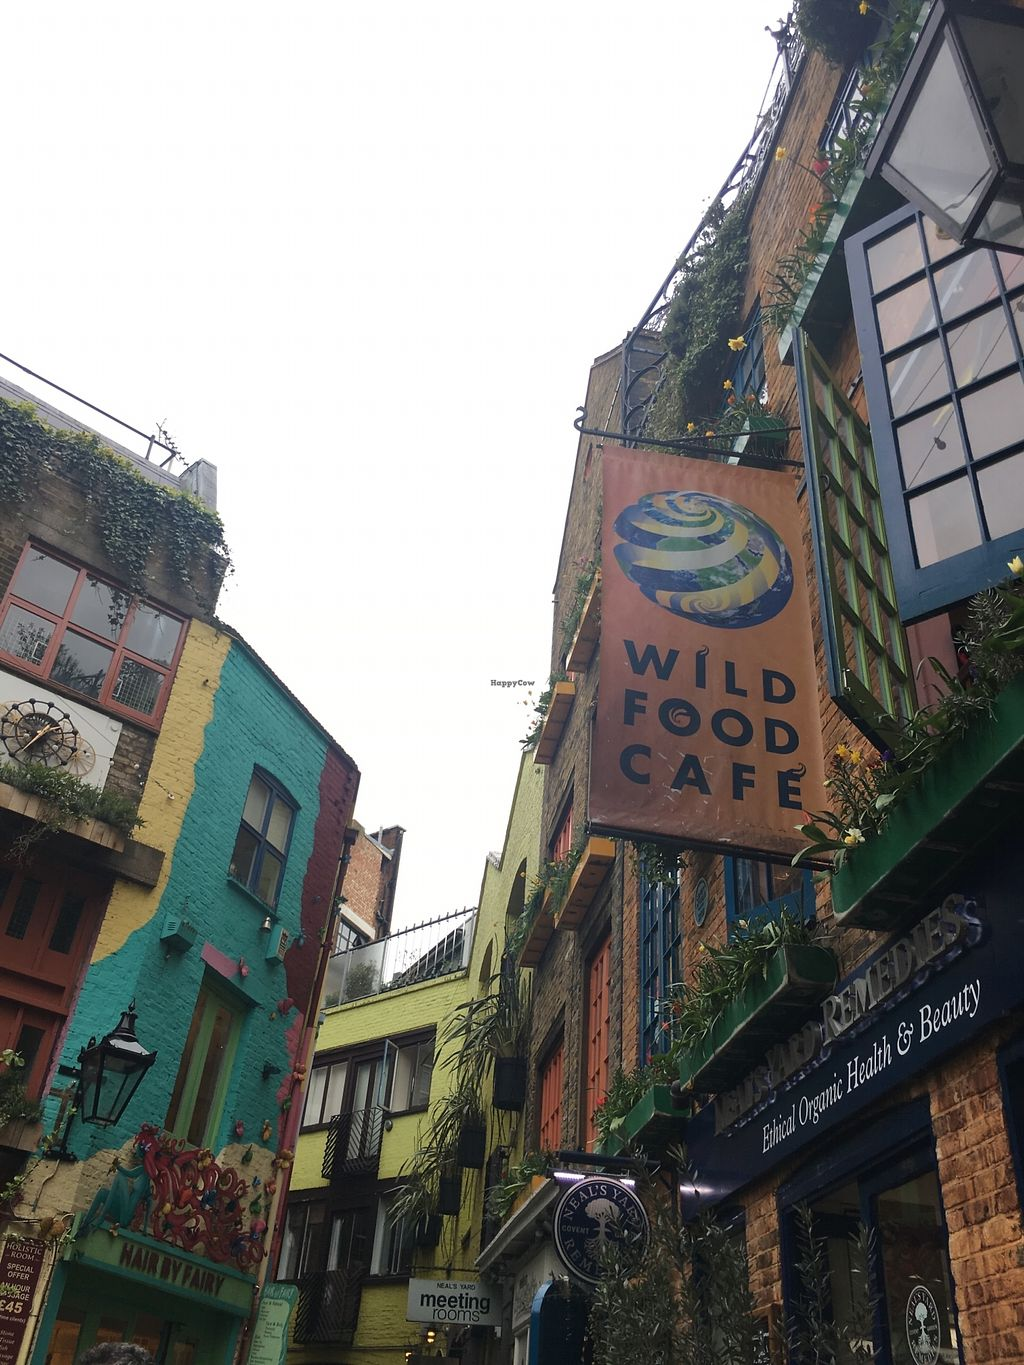 """Photo of Wild Food Cafe  by <a href=""""/members/profile/SkyFitzgerald"""">SkyFitzgerald</a> <br/>View of outside <br/> October 20, 2017  - <a href='/contact/abuse/image/31440/316969'>Report</a>"""